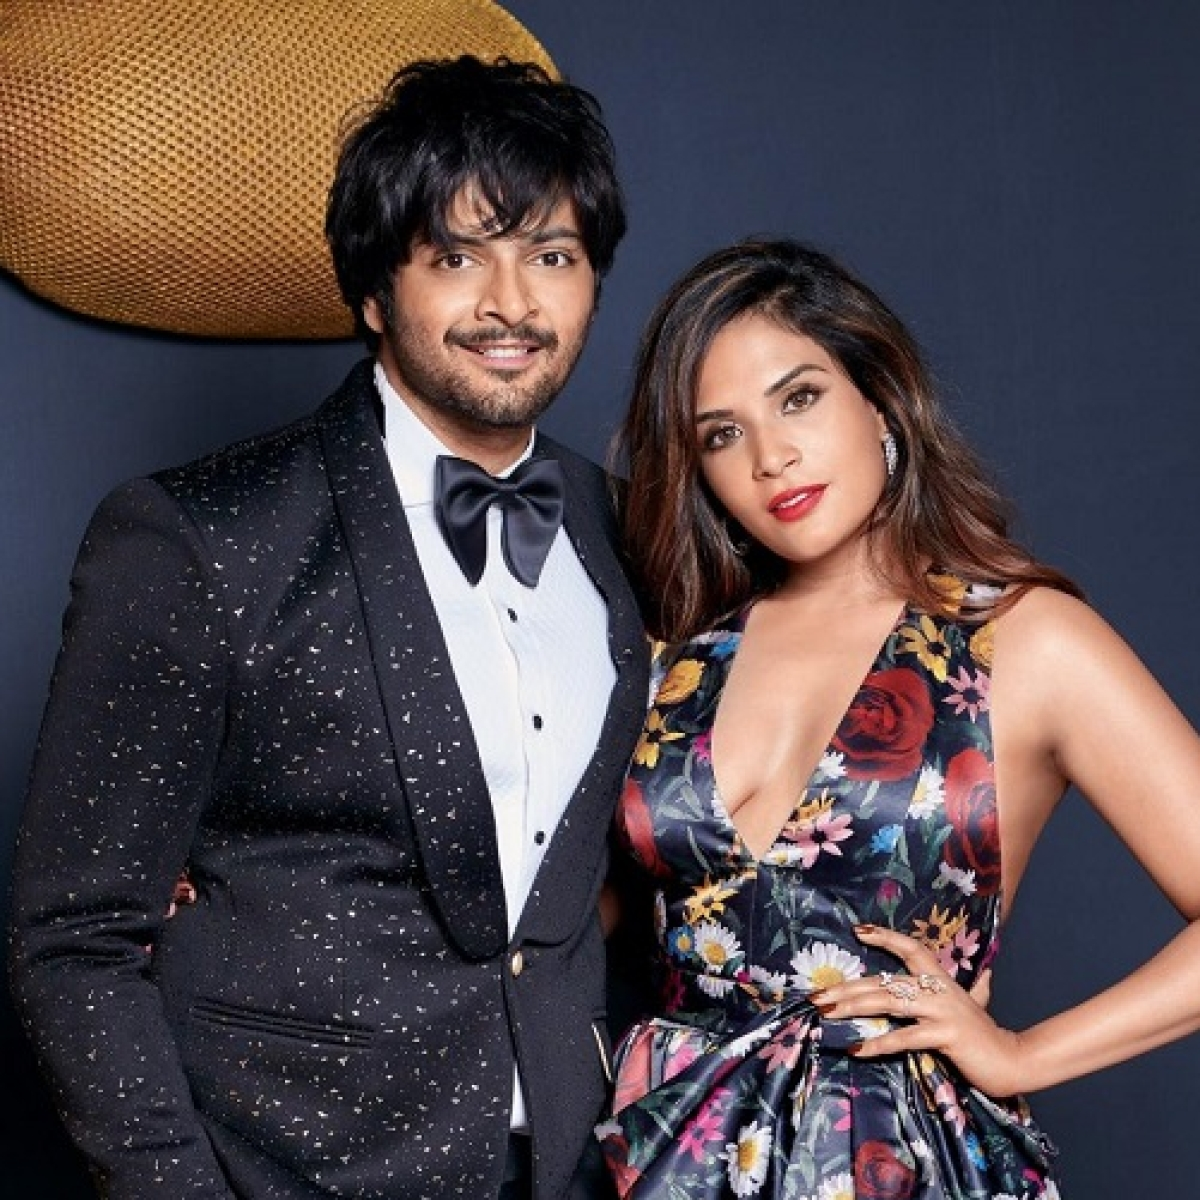 Richa Chadha opens up about wedding plans and opening a production house with beau Ali Fazal